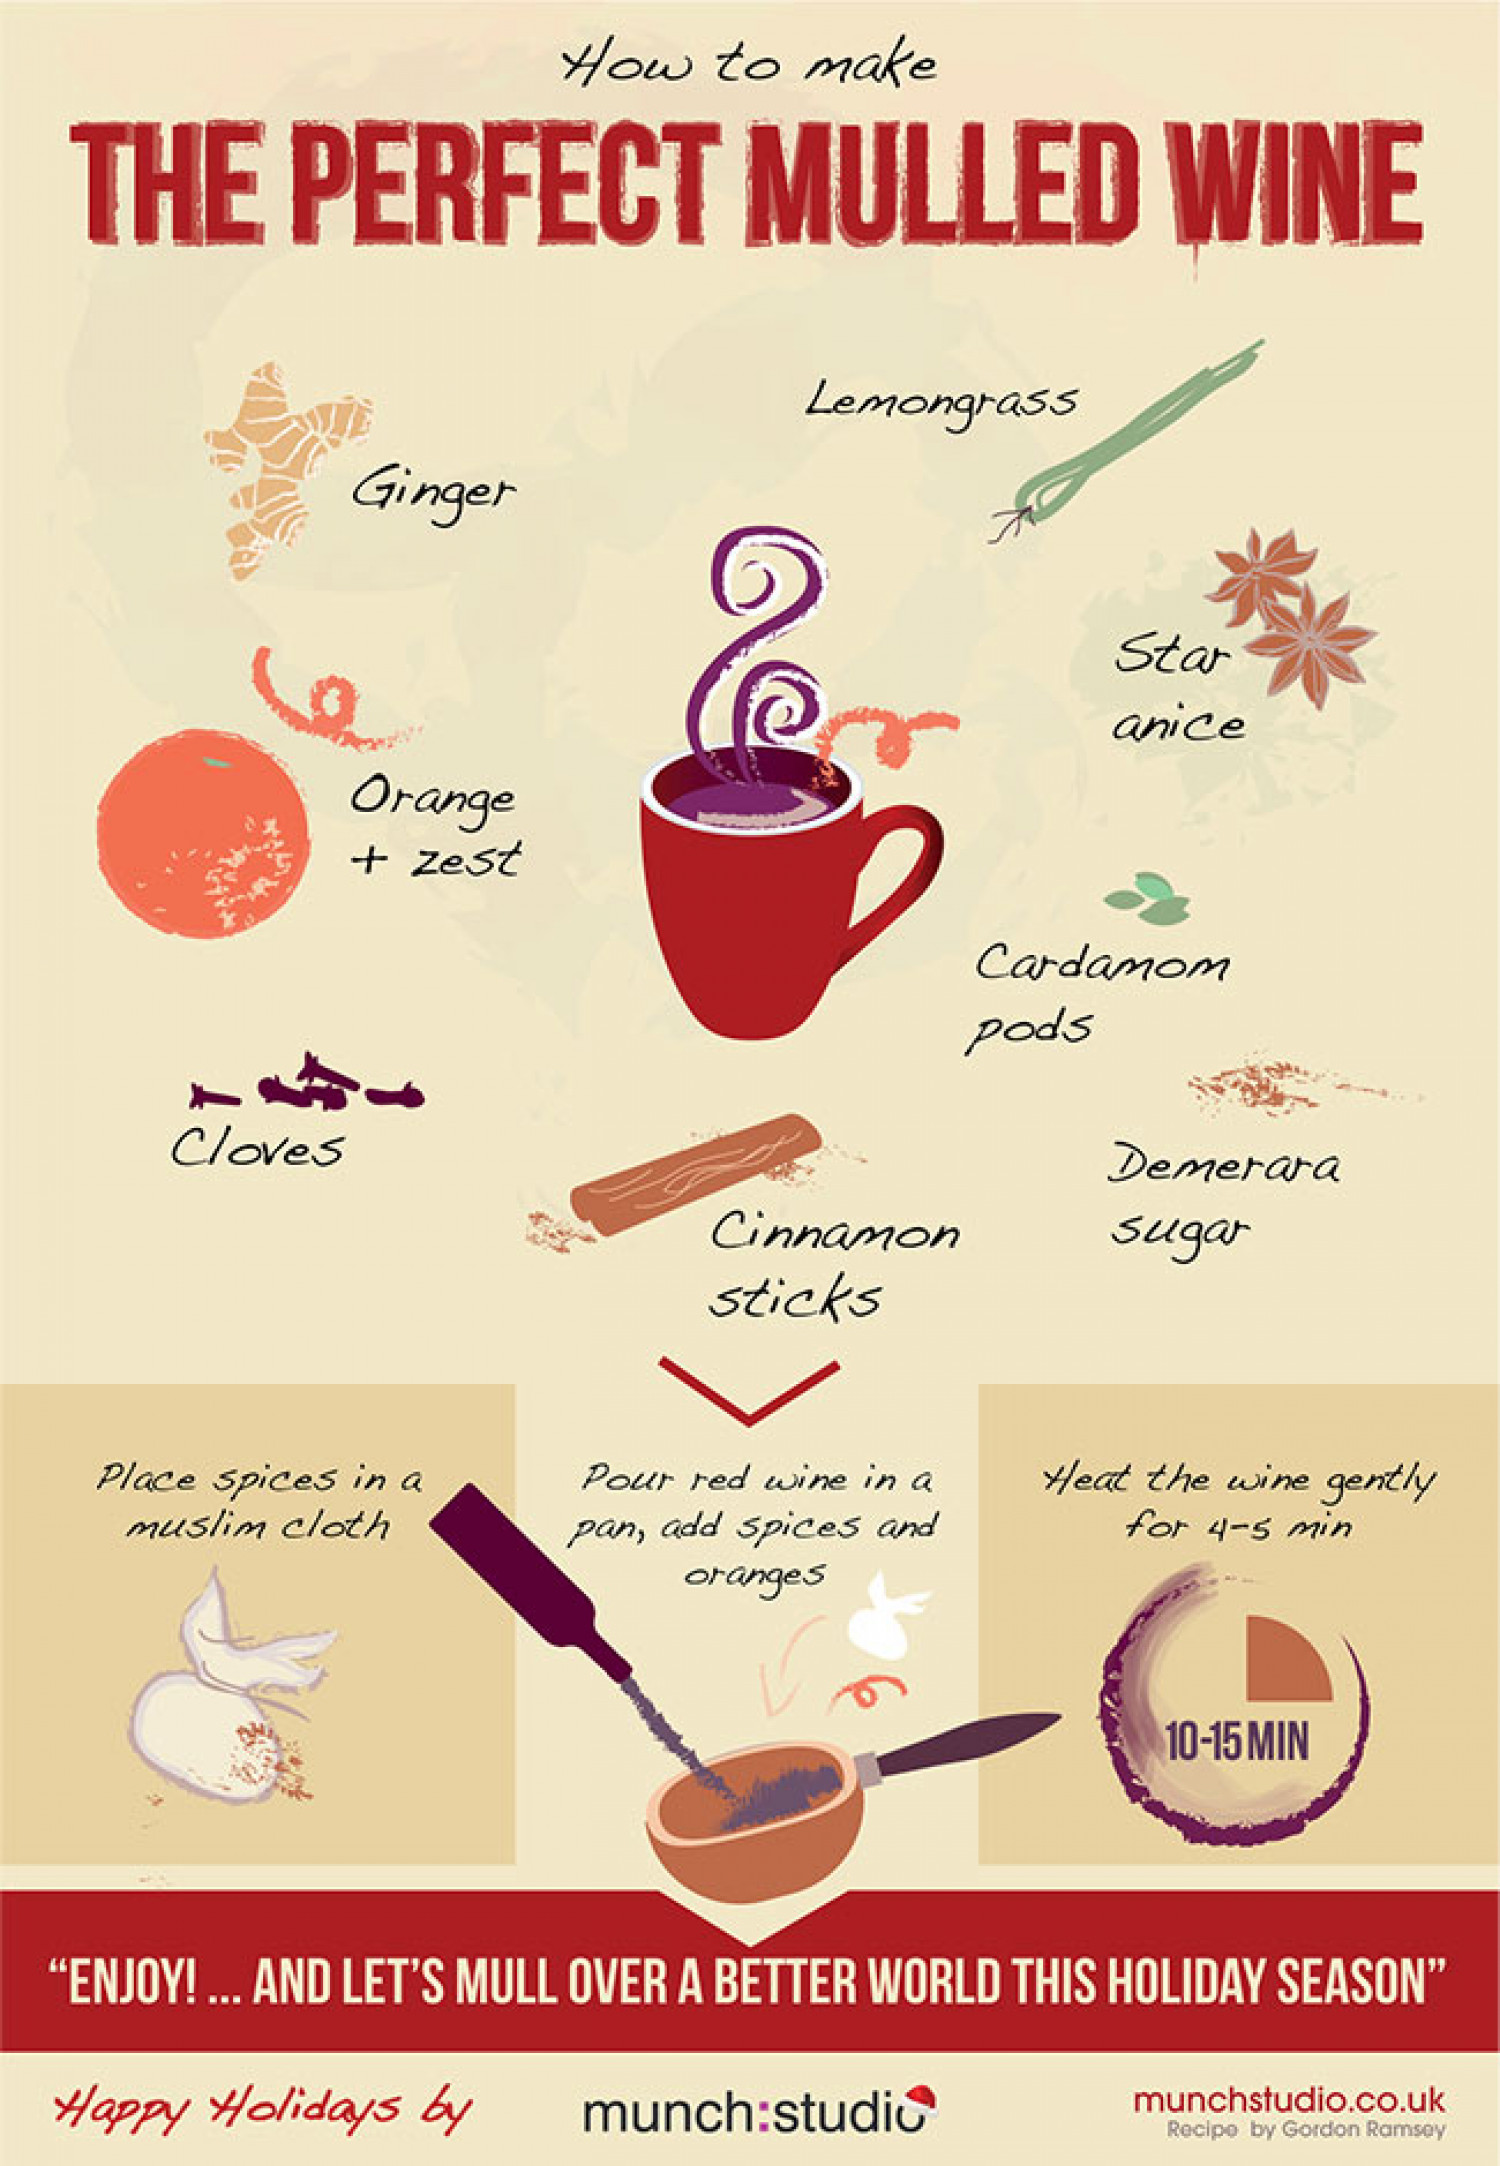 Mulling over a better world 39 how to make the perfect mulled wine 39 infographic - Make perfect mulled wine ...